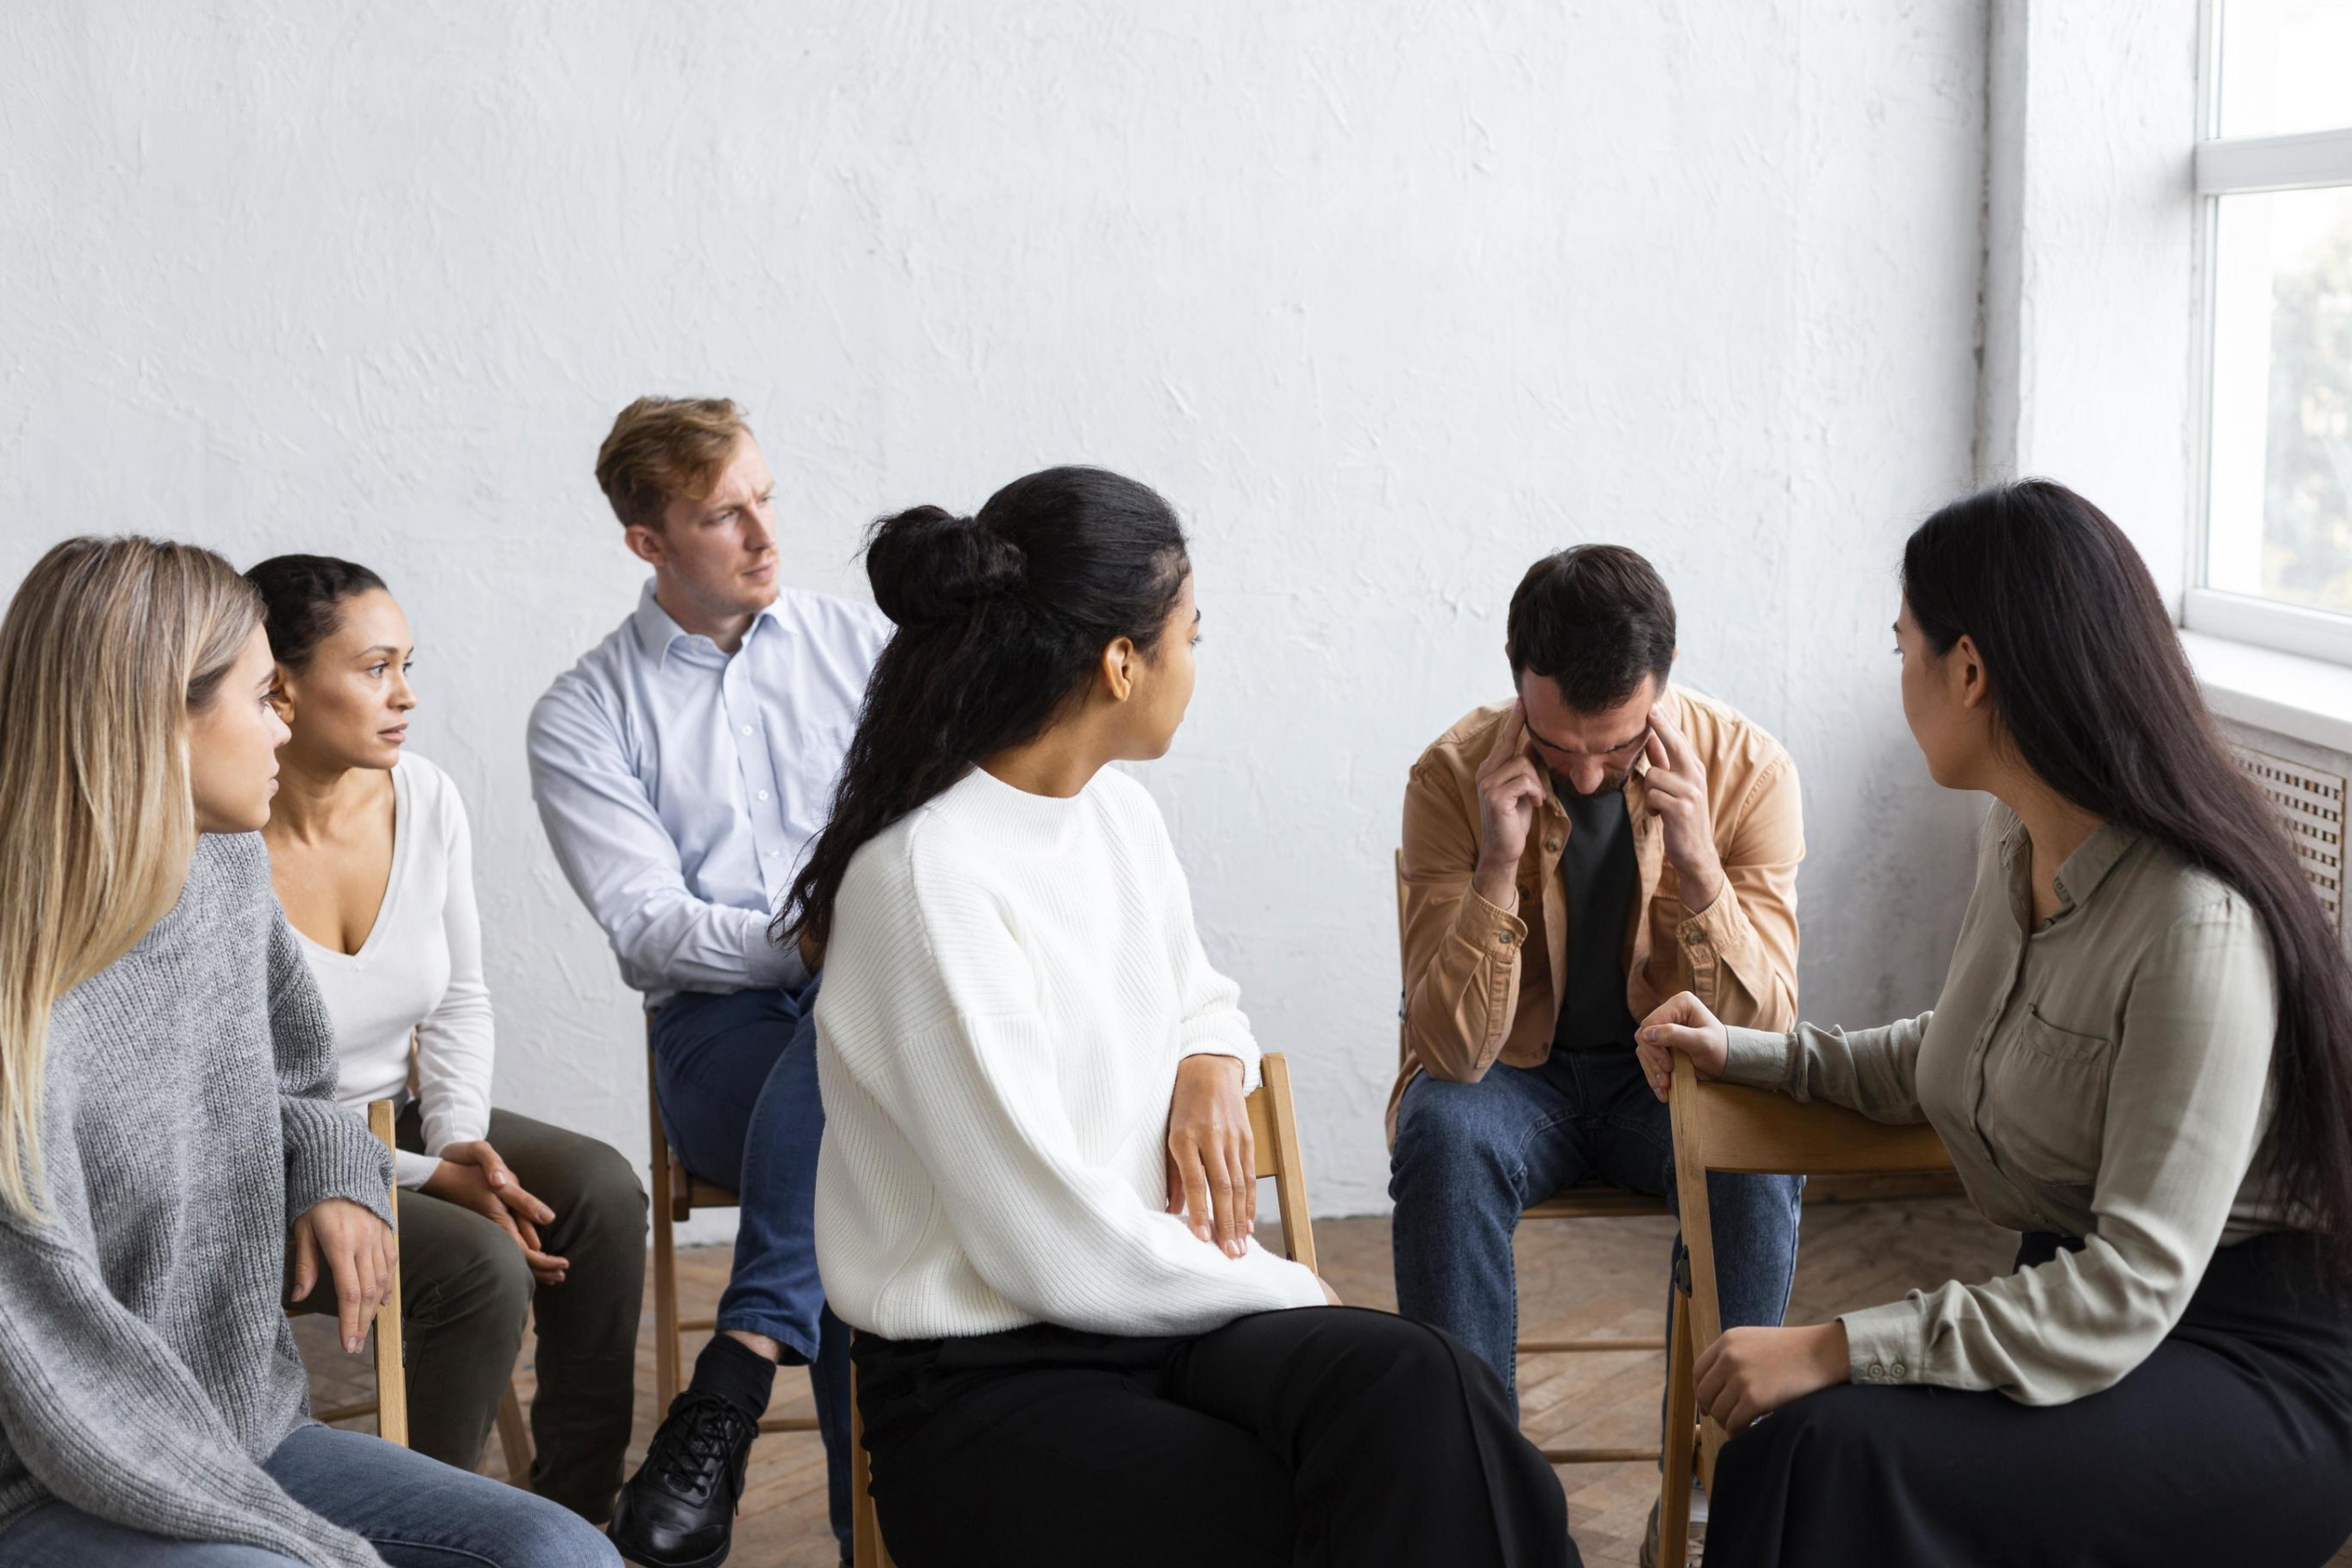 traumatic event counseling albany ny.